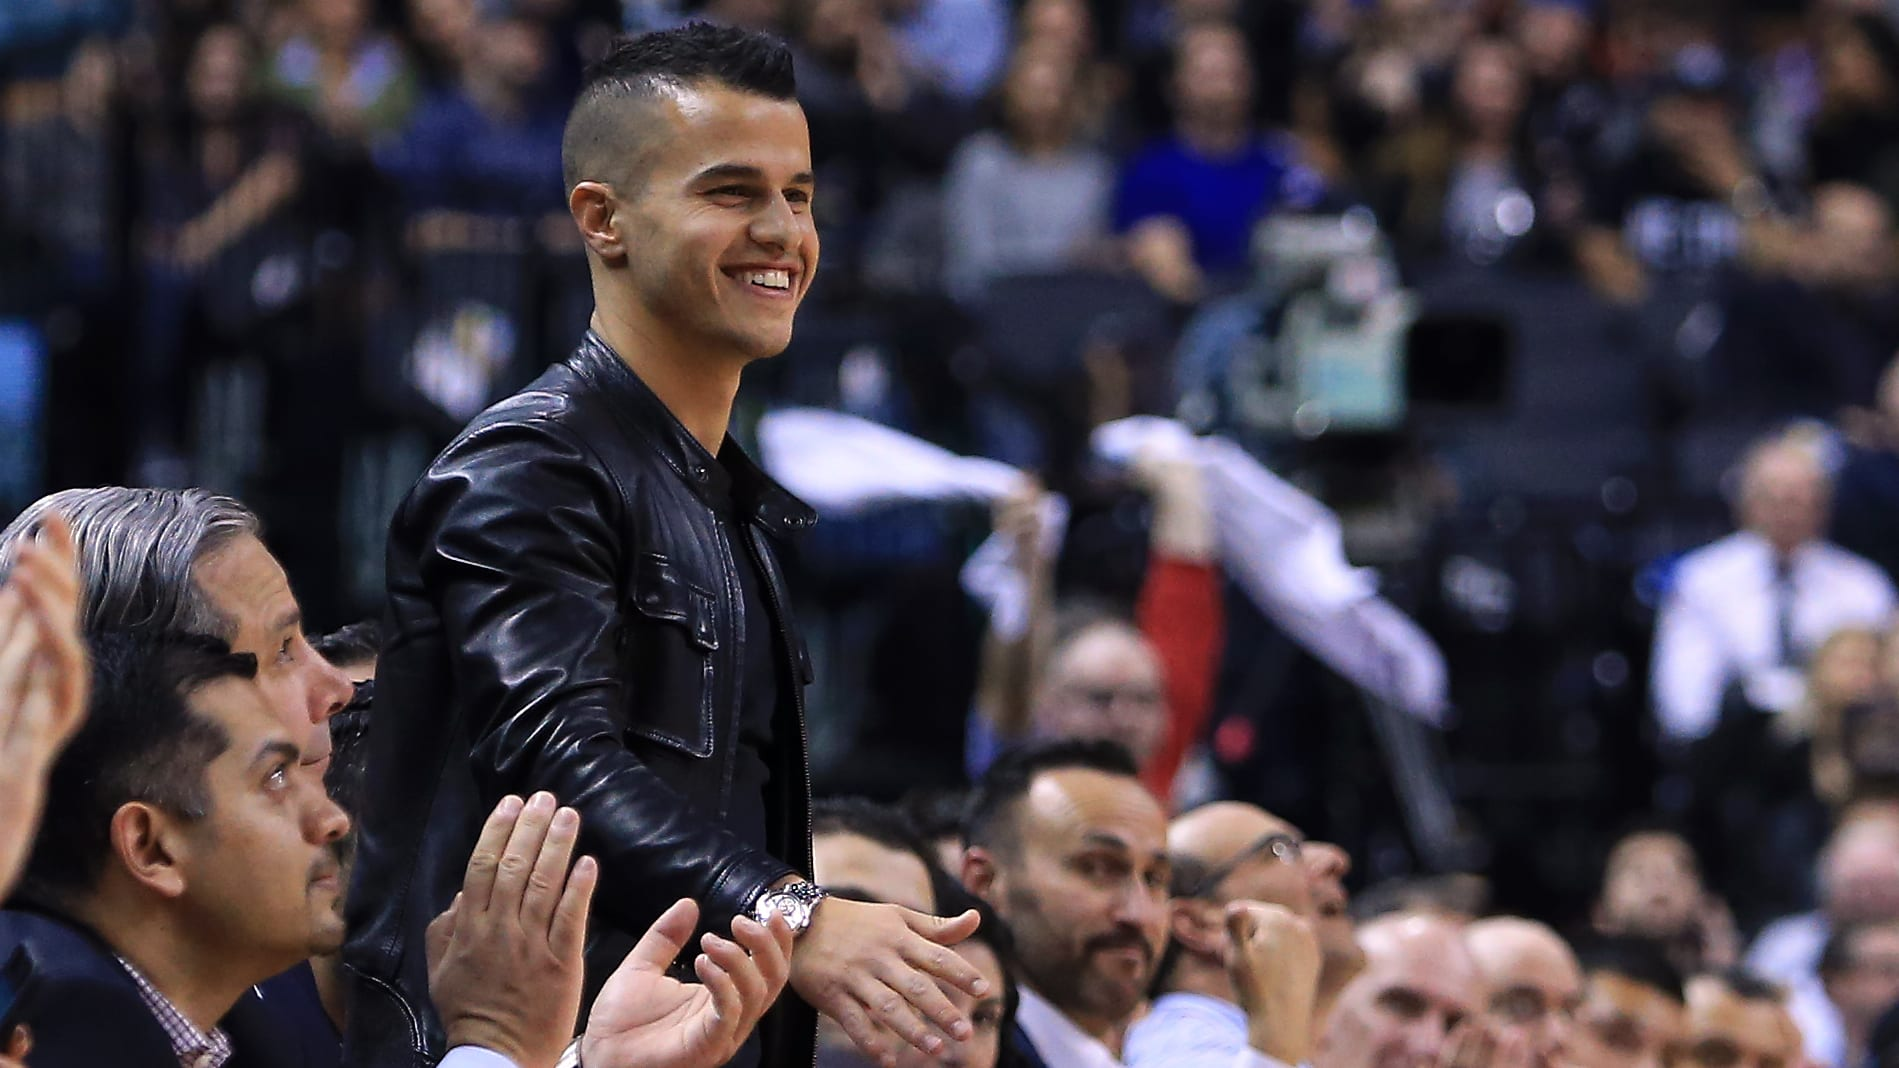 TORONTO, ON - MARCH 30:  Toronto FC soccer player Sebastian Giovinco smiles from his courtside seat during the first half of an NBA game between the Atlanta Hawks and the Toronto Raptors at the Air Canada Centre on March 30, 2016 in Toronto, Ontario, Canada.  NOTE TO USER: User expressly acknowledges and agrees that, by downloading and or using this photograph, User is consenting to the terms and conditions of the Getty Images License Agreement.  (Photo by Vaughn Ridley/Getty Images)